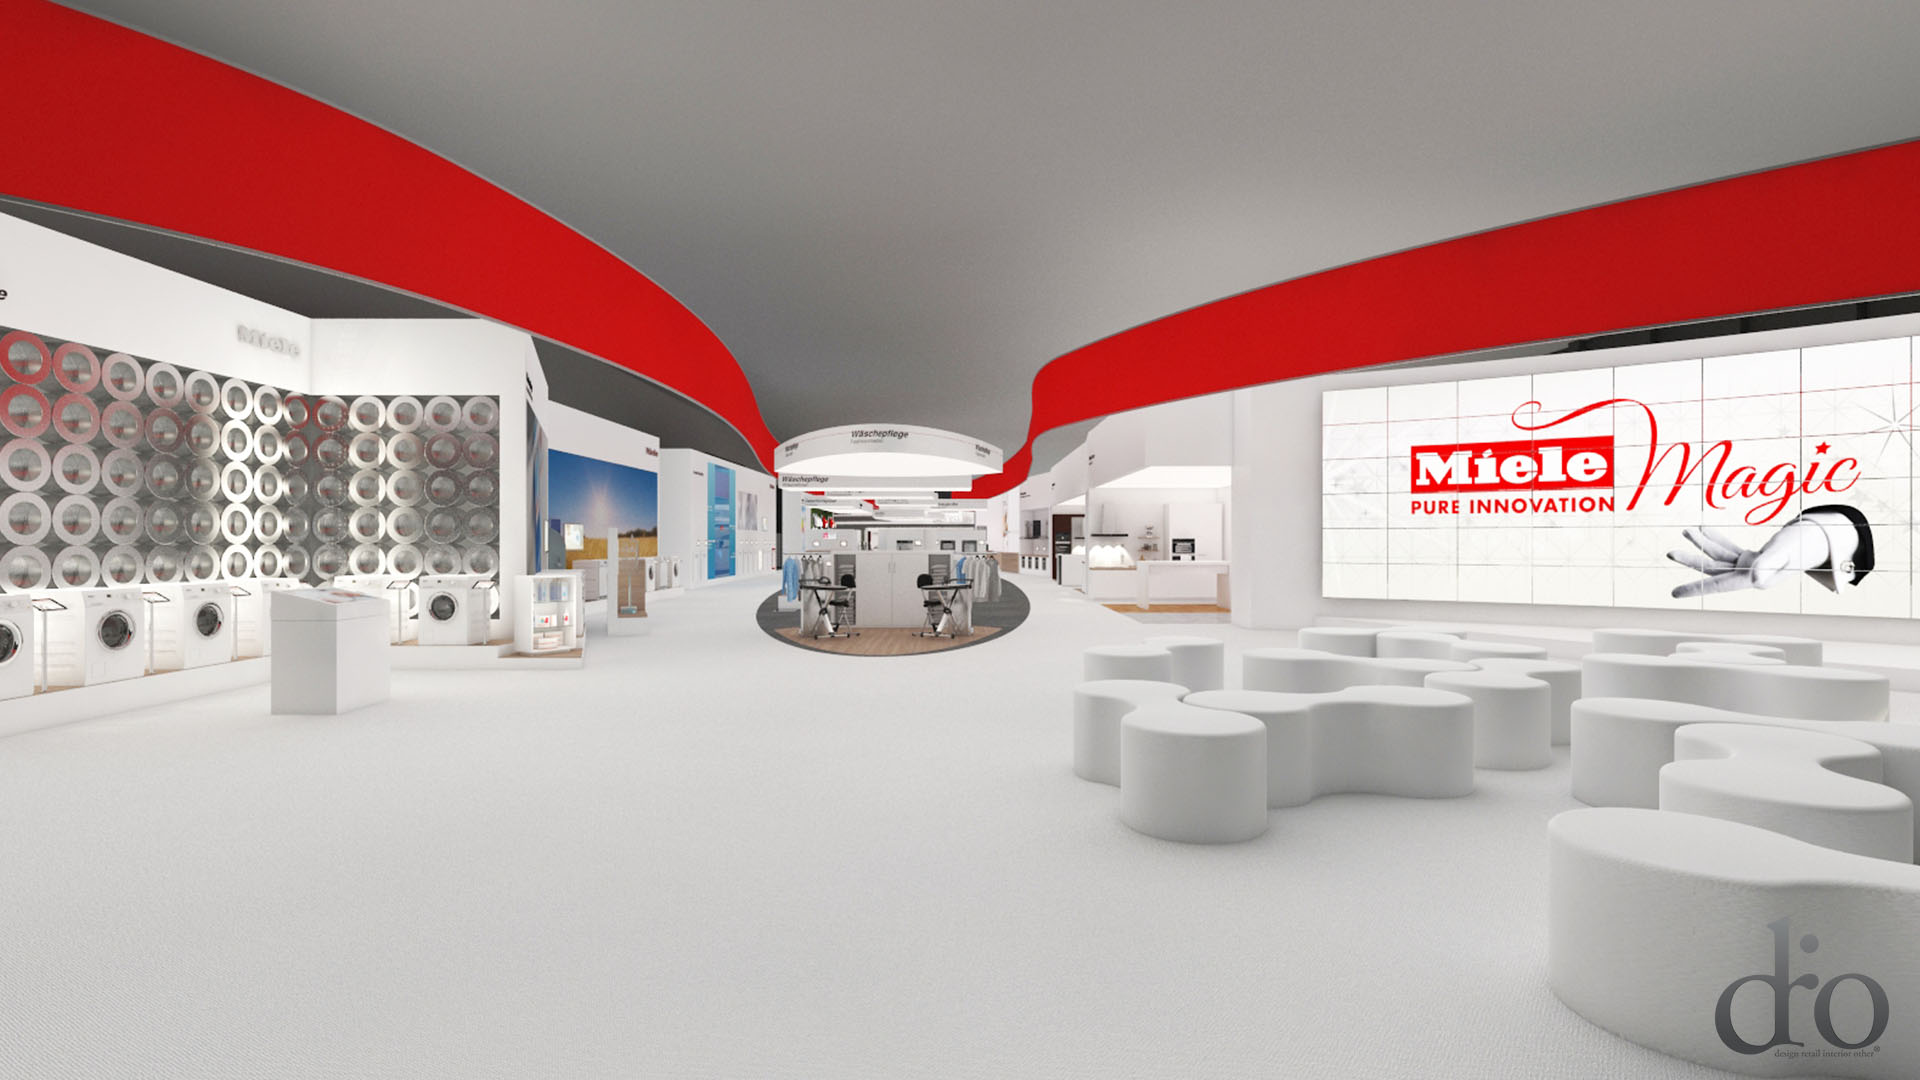 Messedesign & Exhibition Visualisierung mit Drio Design - Innenarchitekt